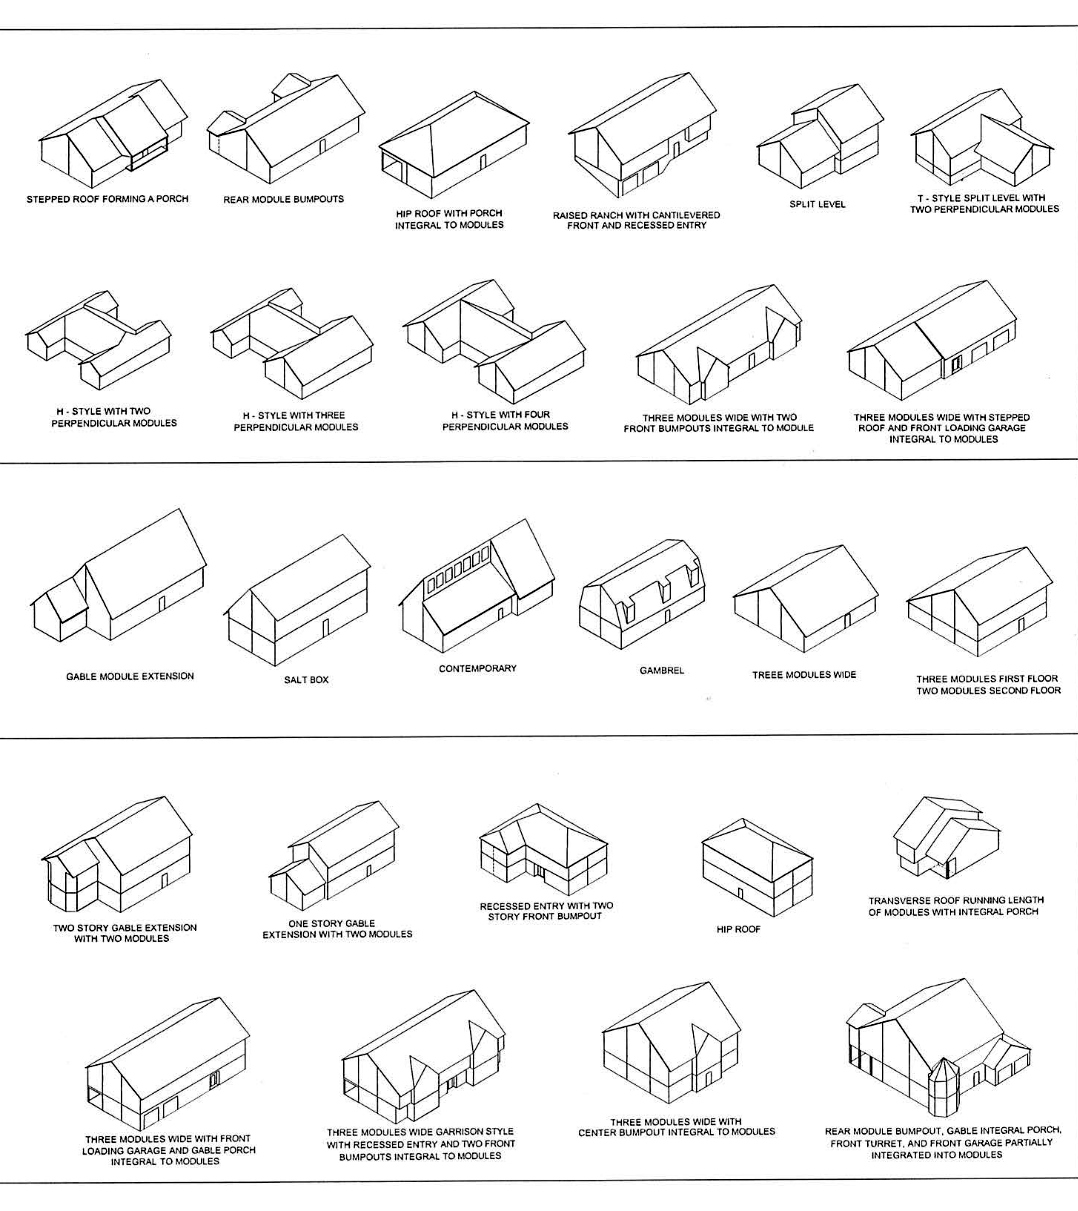 Here are some of the more typical configurations of modules that create various exterior and interior modular home designs.